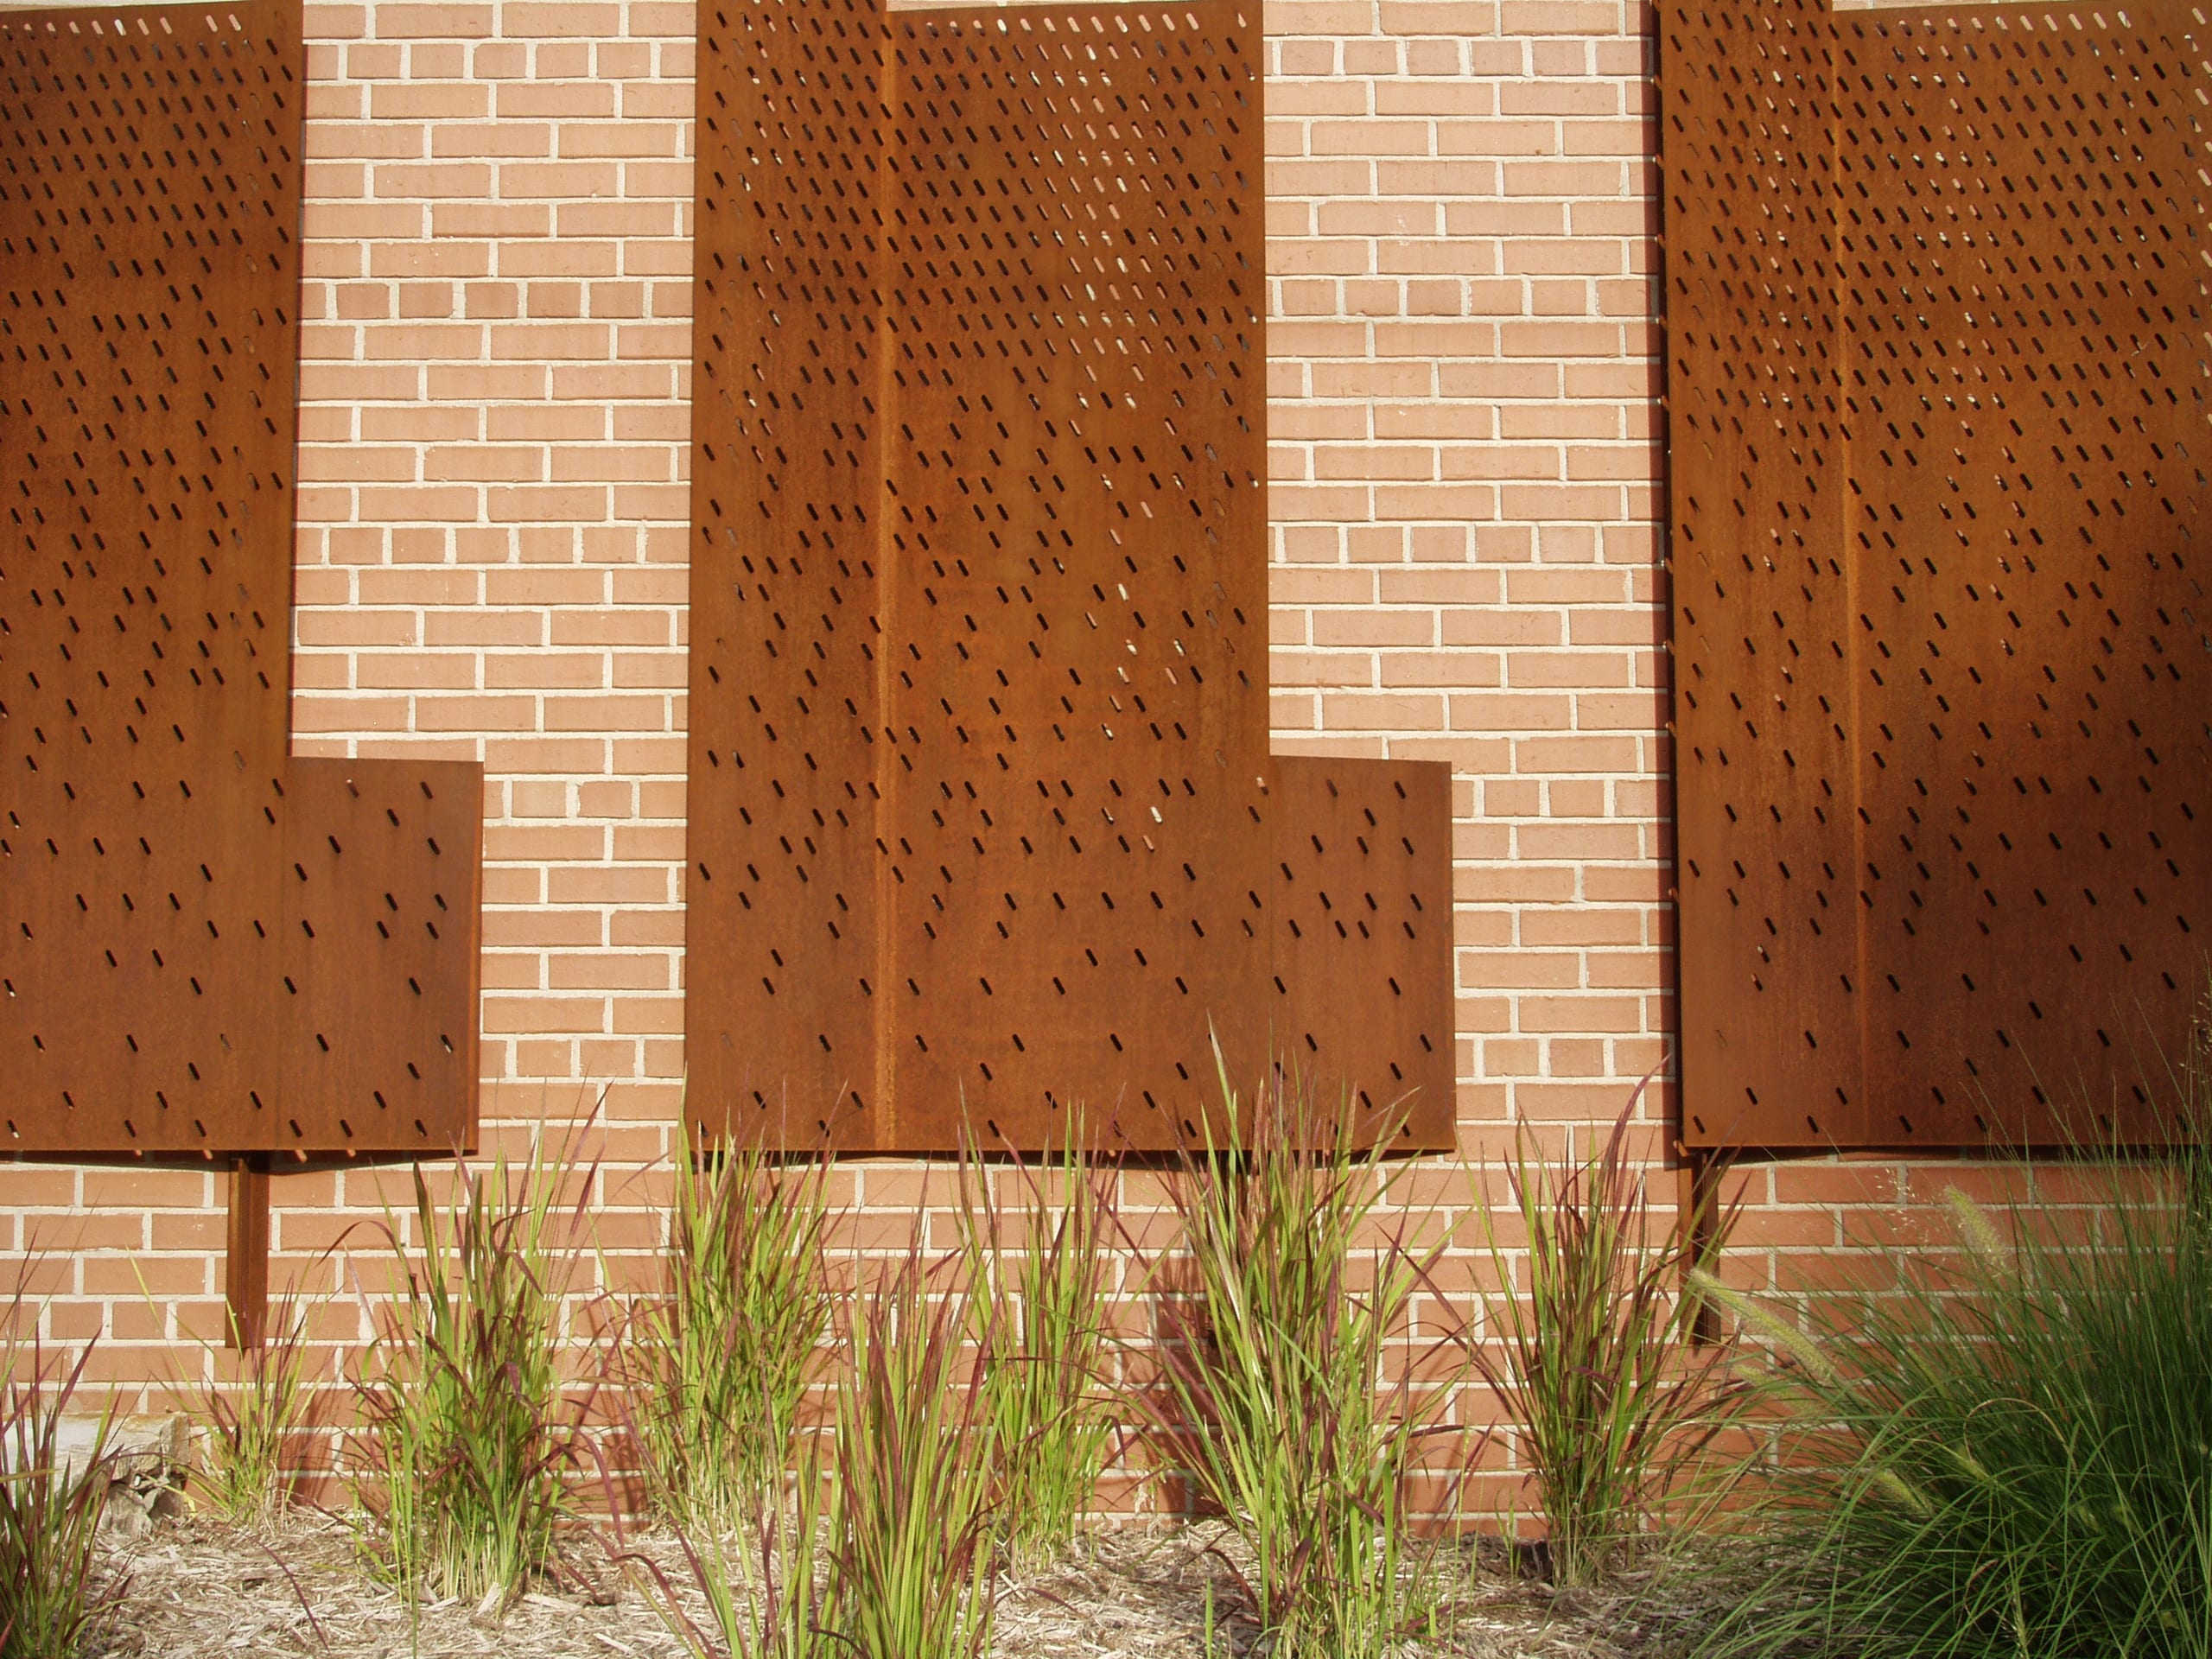 The perforated metal gate motif continues onto the brick wall as an wall-mounted metal artwork.